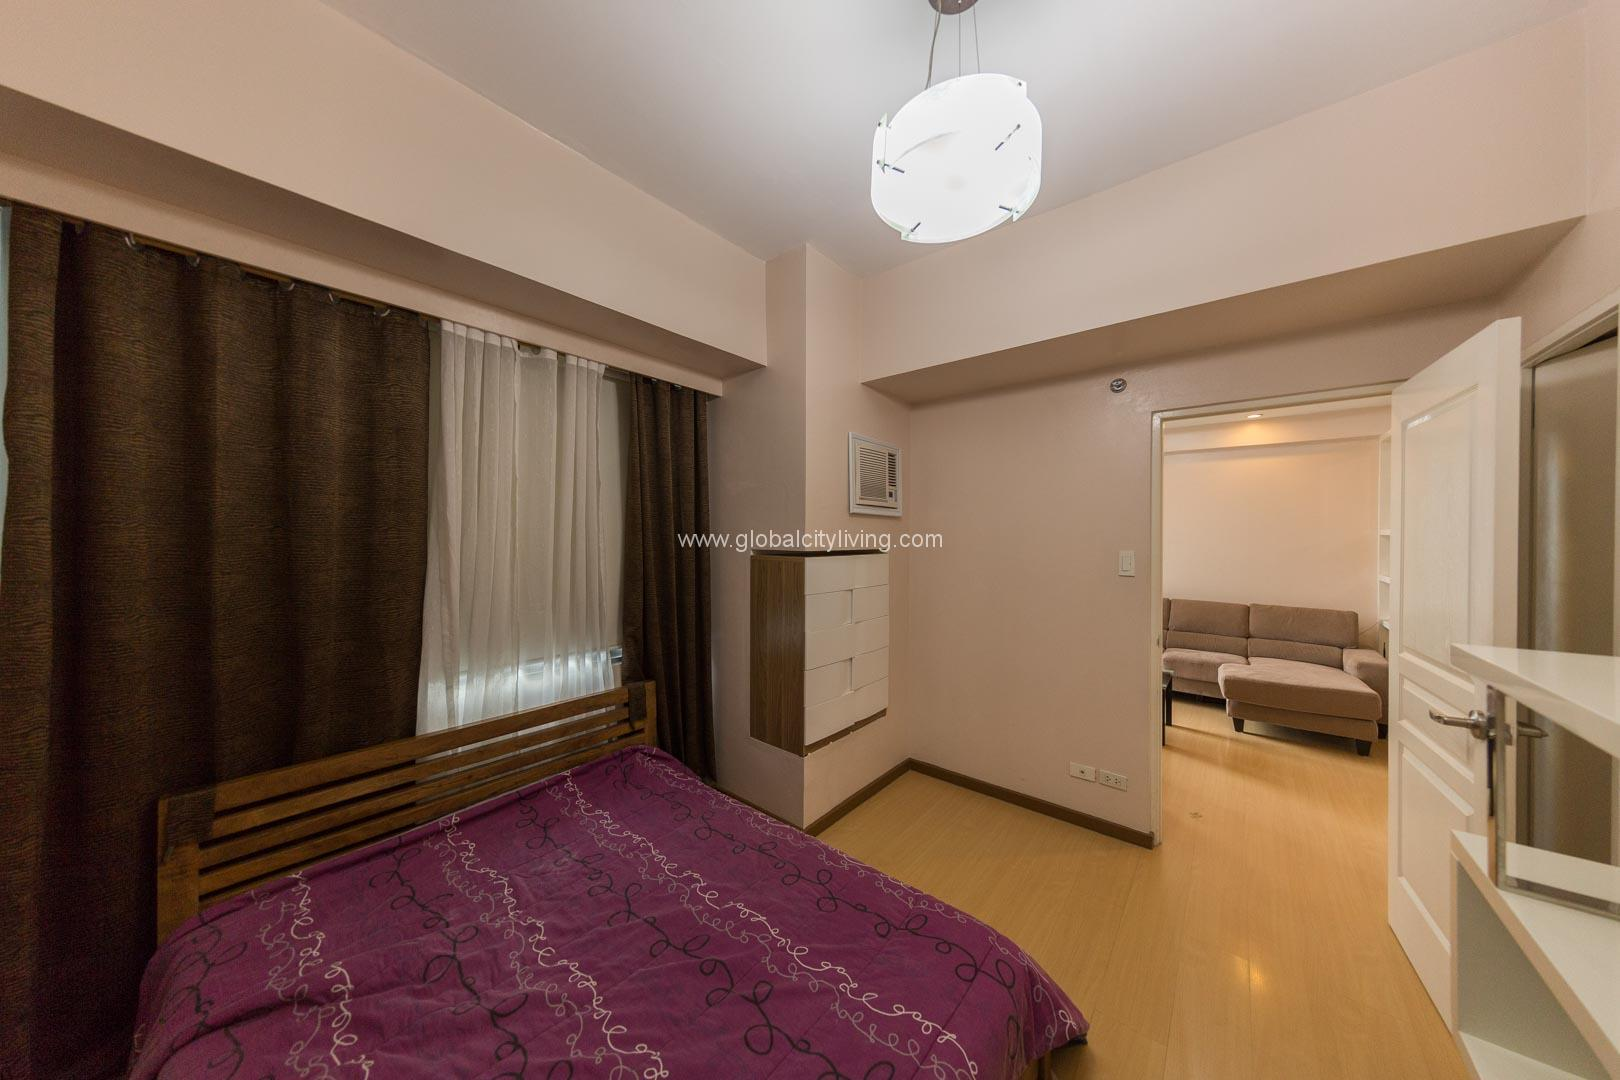 Exquisitely Furnished One Bedroom 1br Condo For Sale In Best Known Gated Community At Avant At